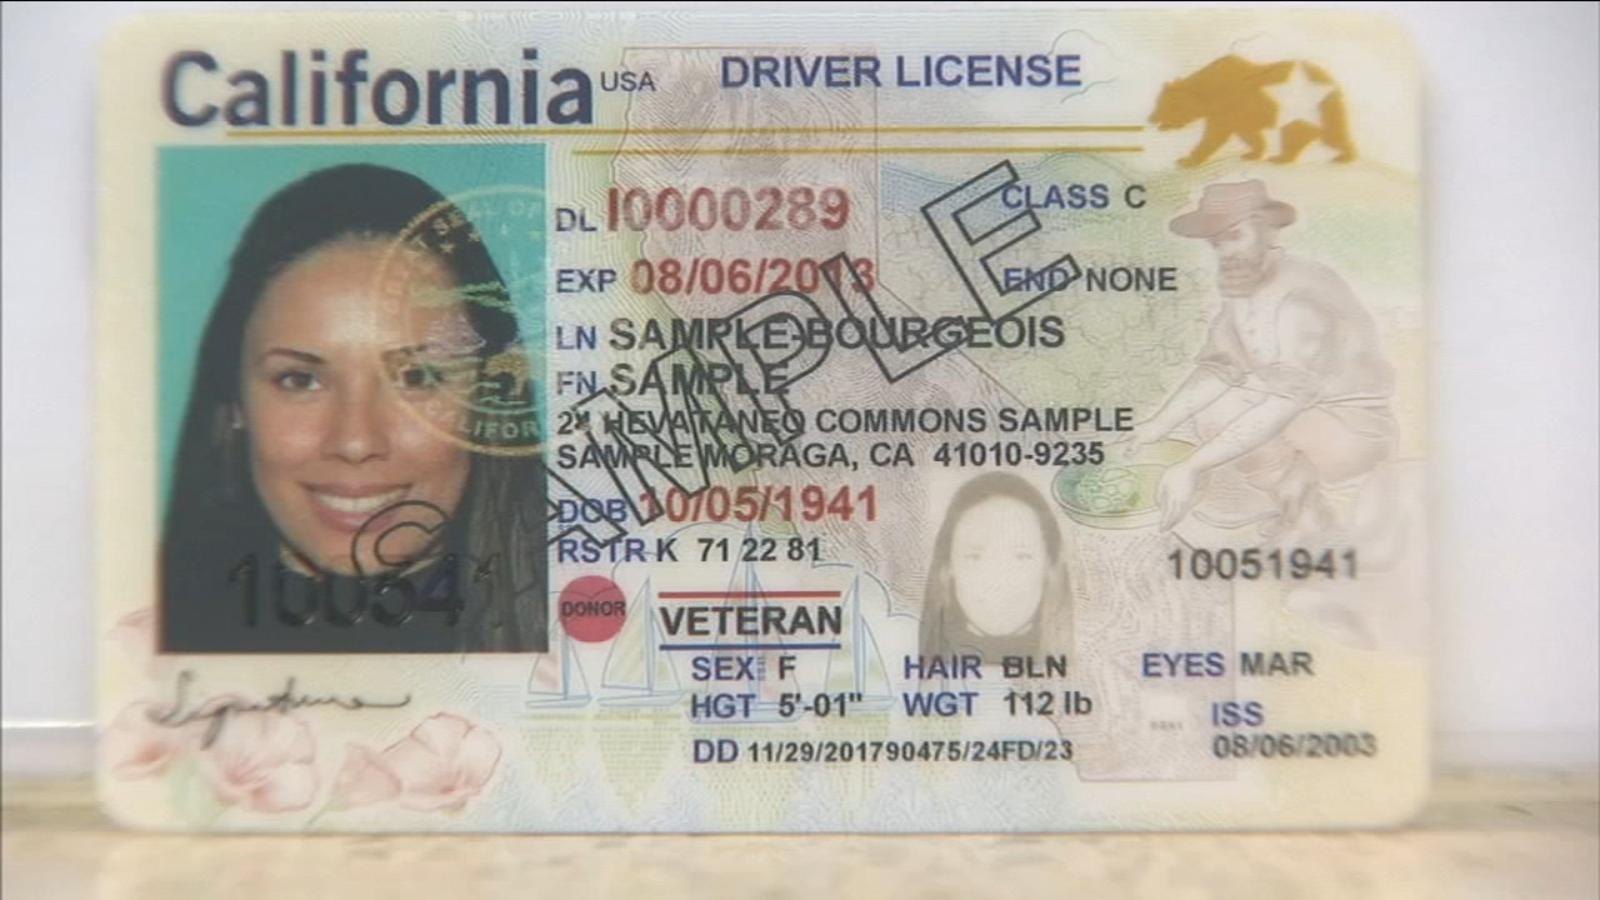 California May January 22 Residents Abc7news Be Unable Of Extra Fly To Starting Without Id com Millions